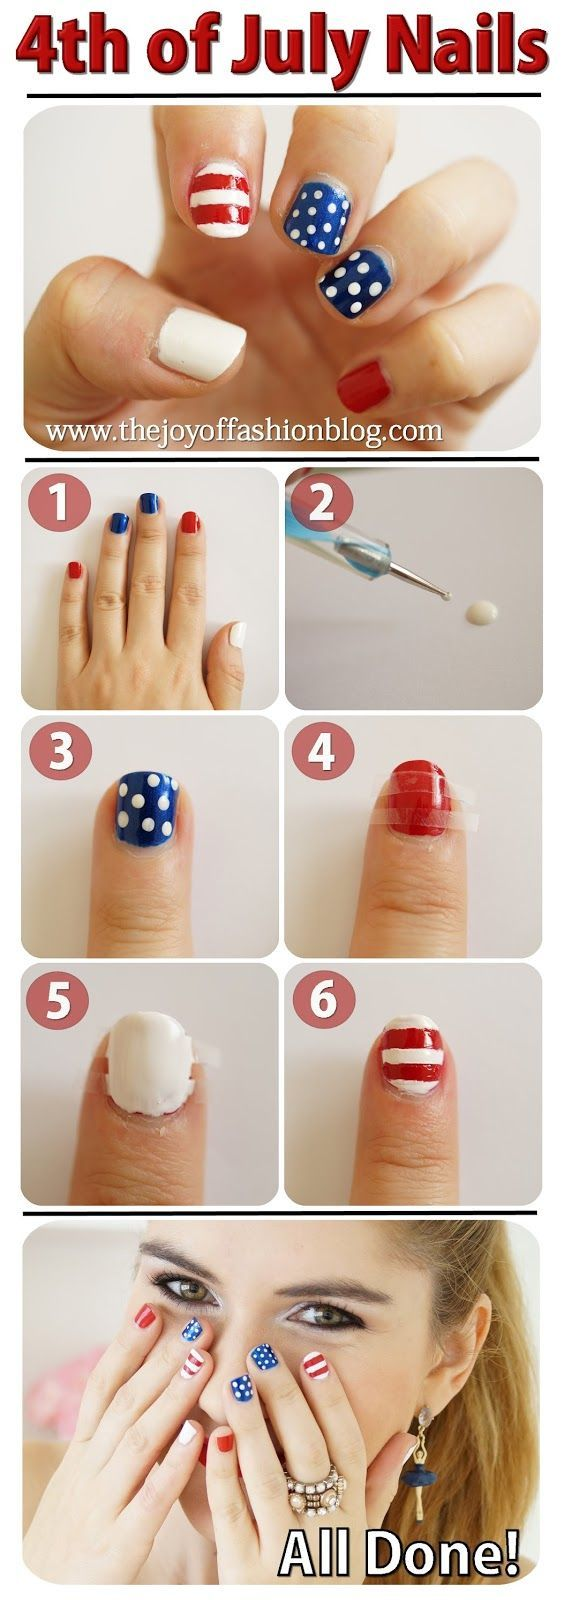 63 best Nail Humor images on Pinterest | Cute nails, Nail quotes and ...